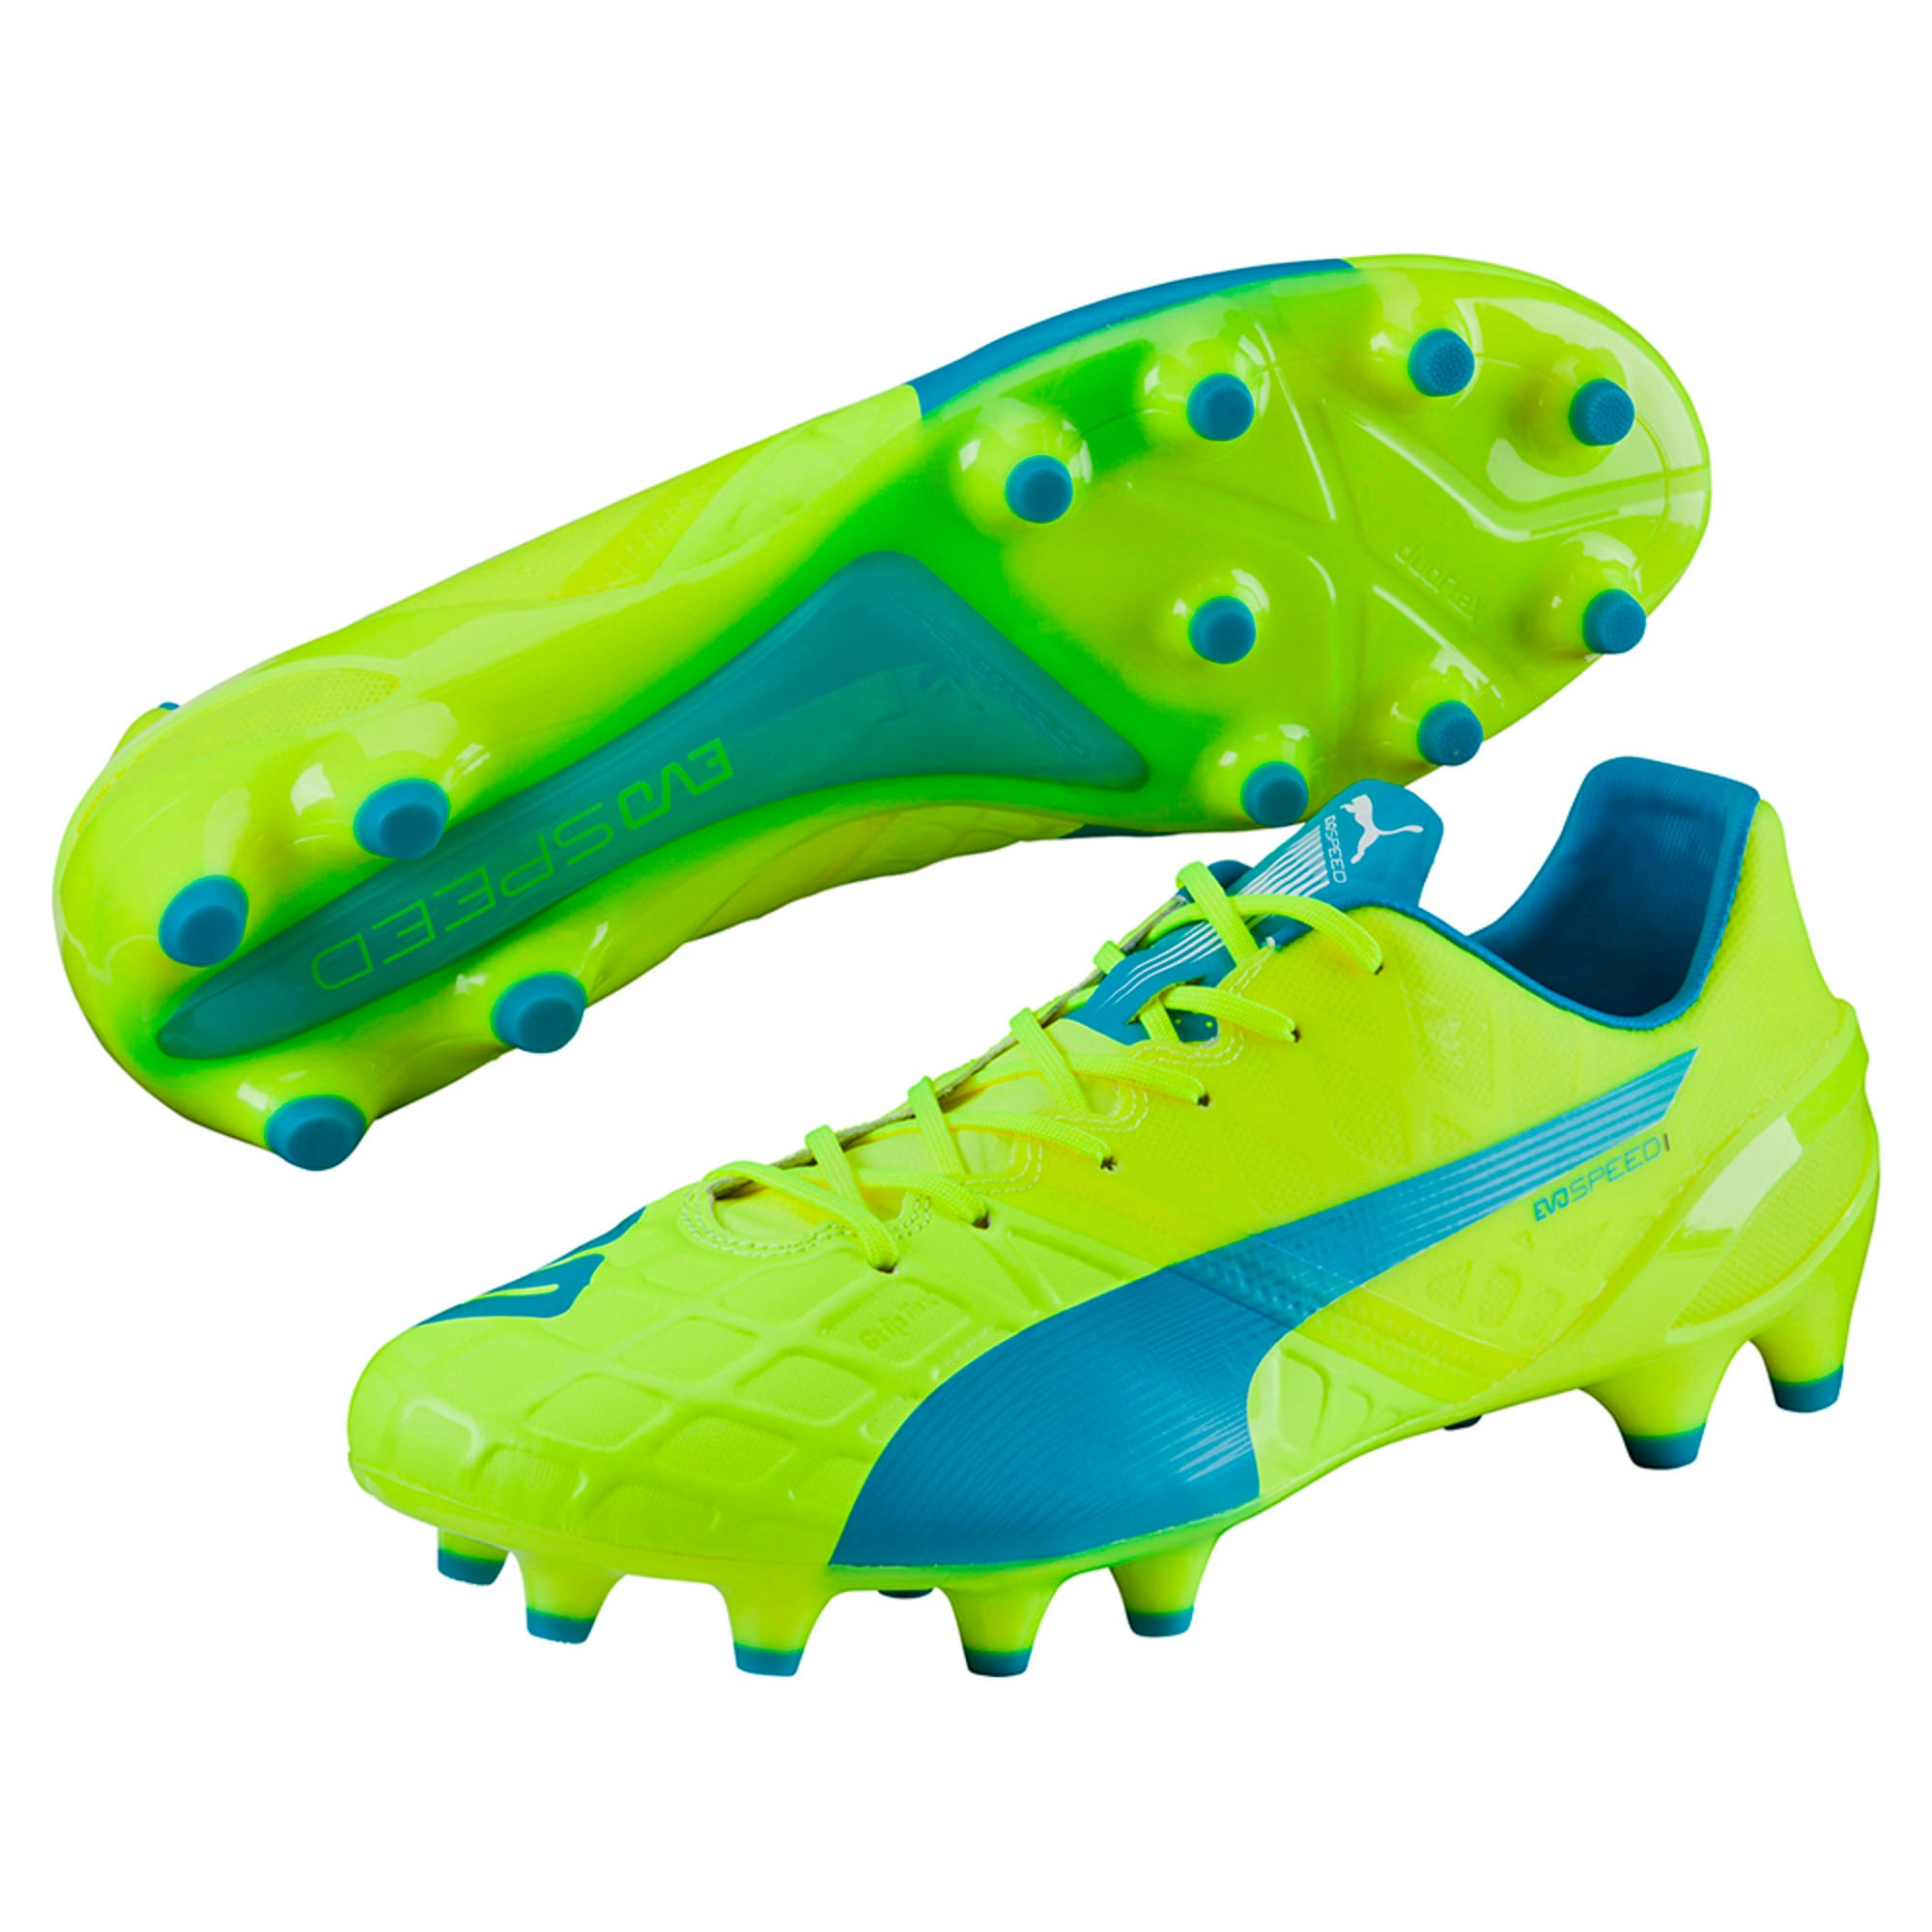 Thumbnail 6 of evoSPEED 1.4 FG Football Boots, yellow-blue-white, medium-IND